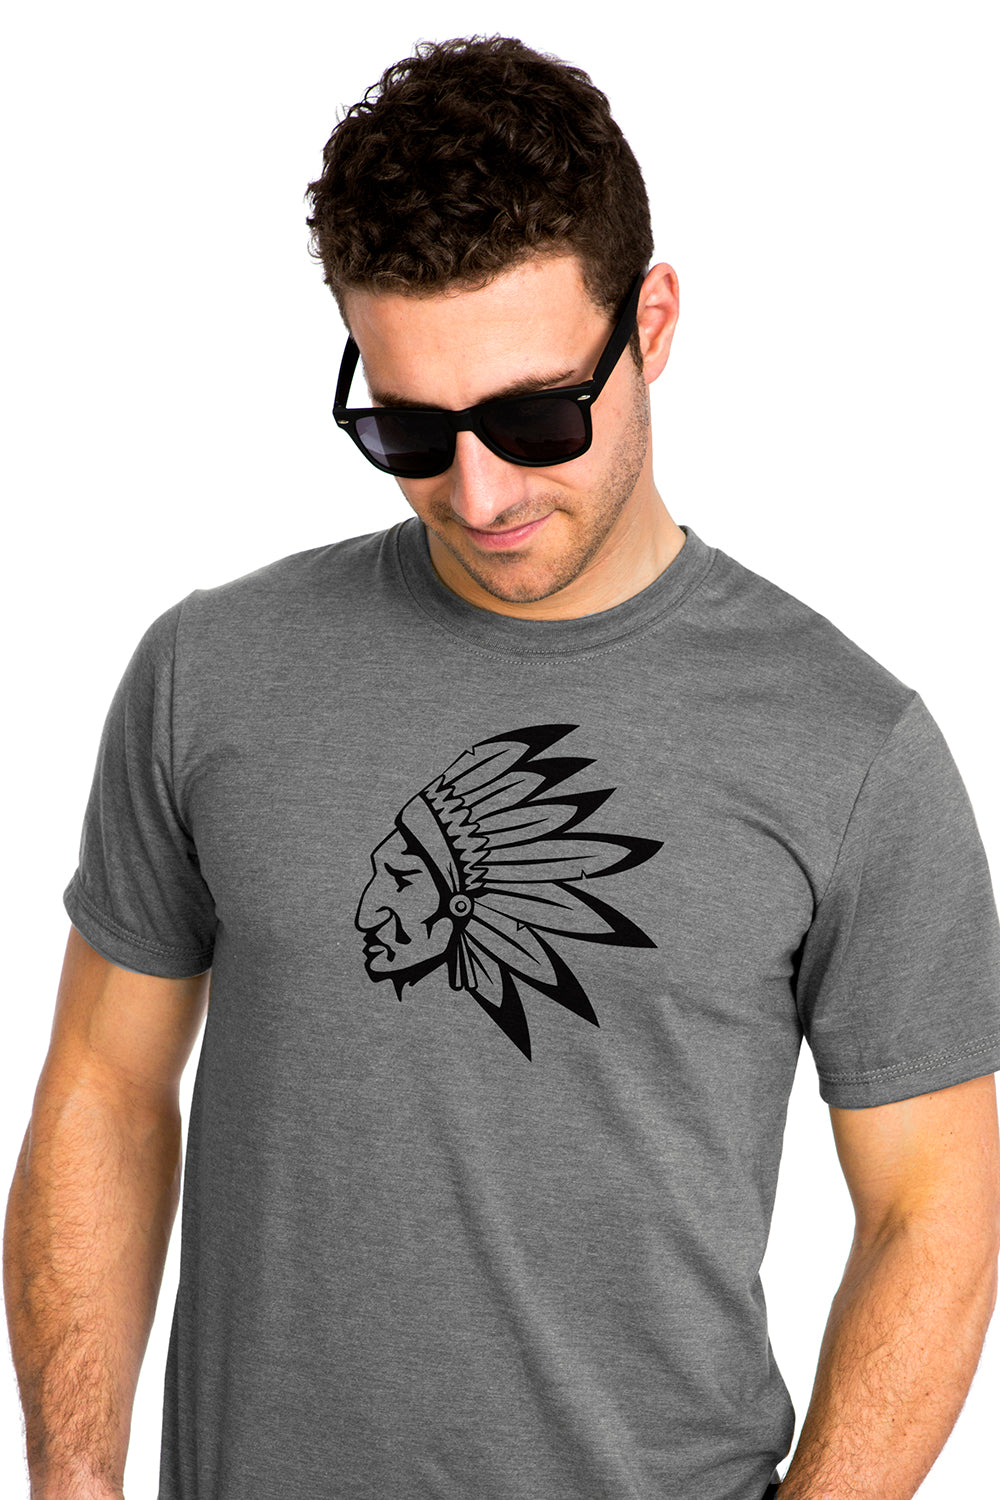 Native American Chief T-shirt Chef Amerindien PLB Gray Gris